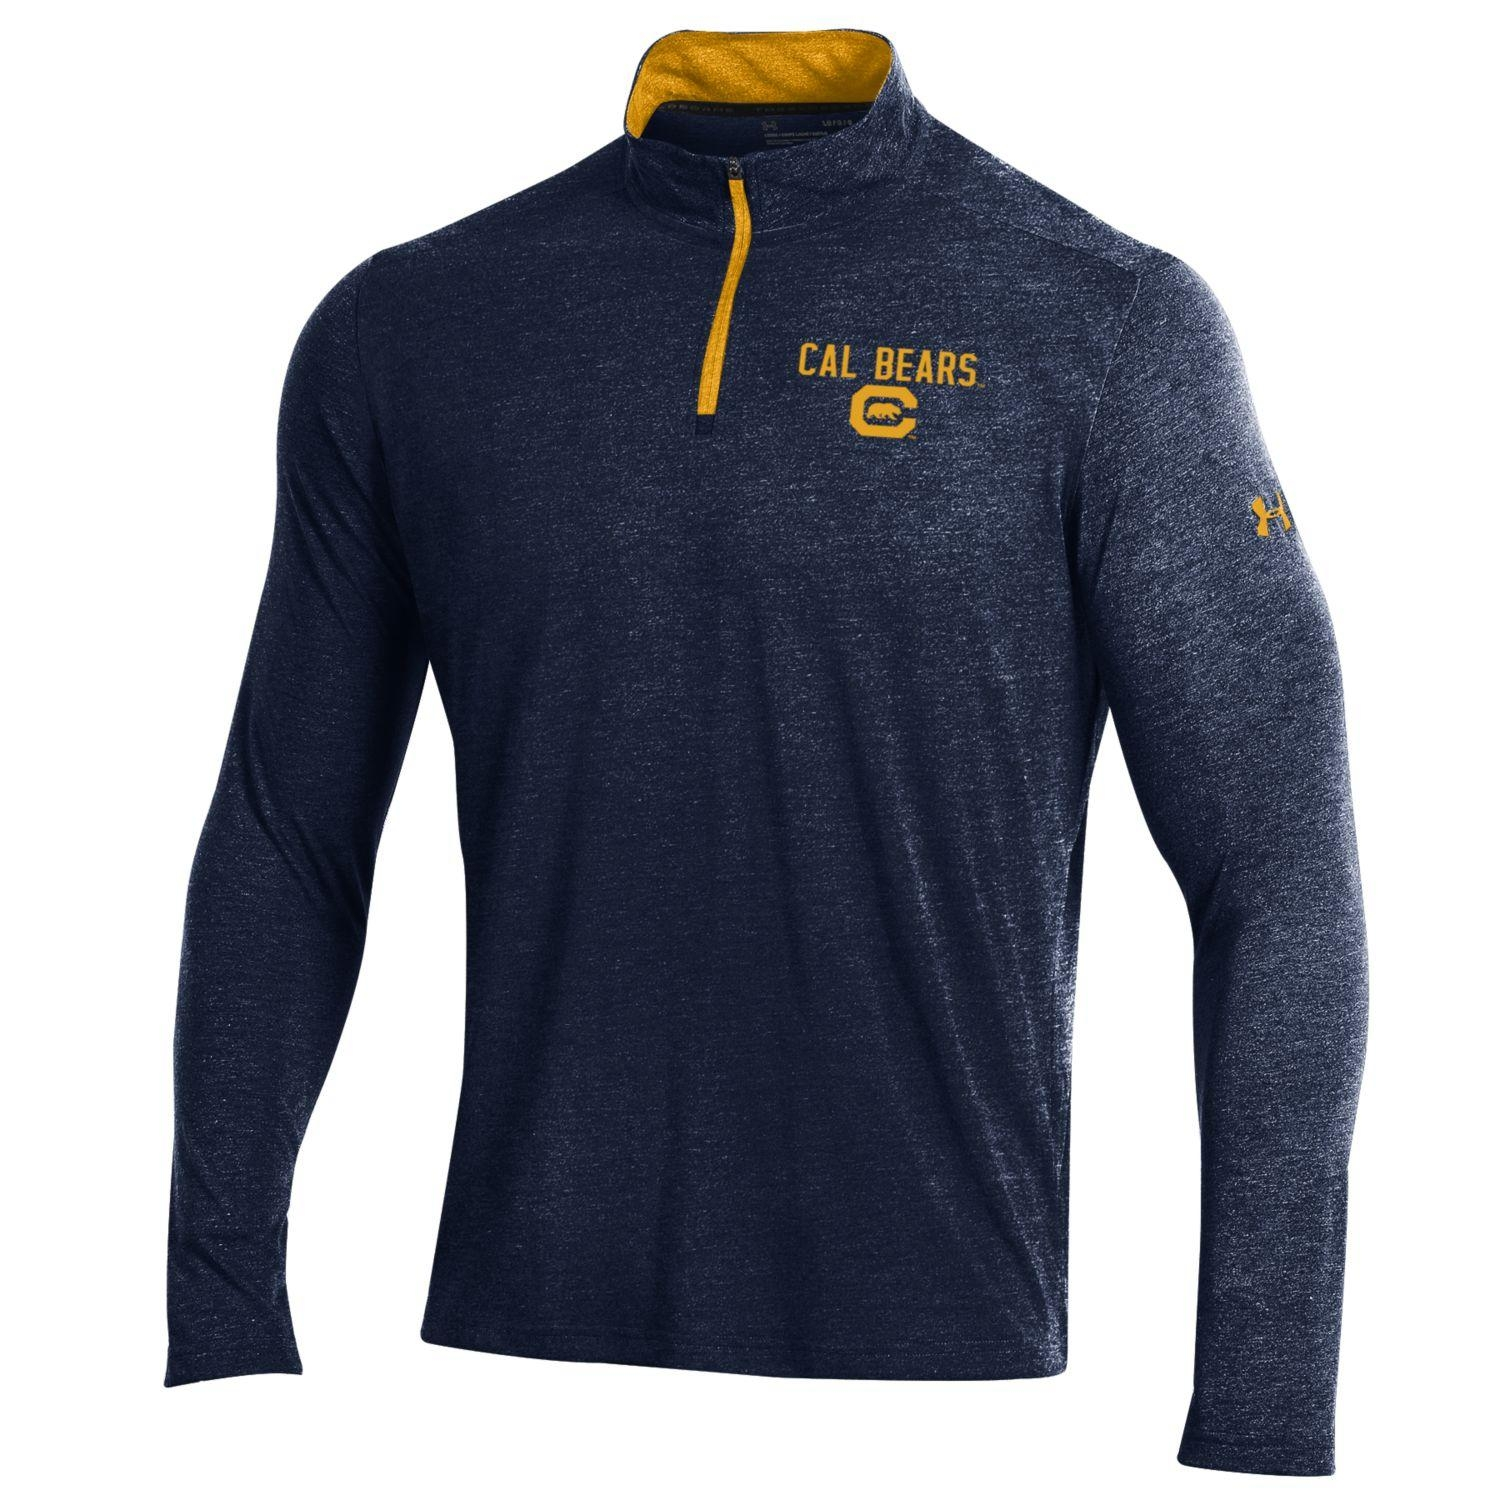 University of California Berkeley Under Armour Men's Threadborne 1/4 Zip